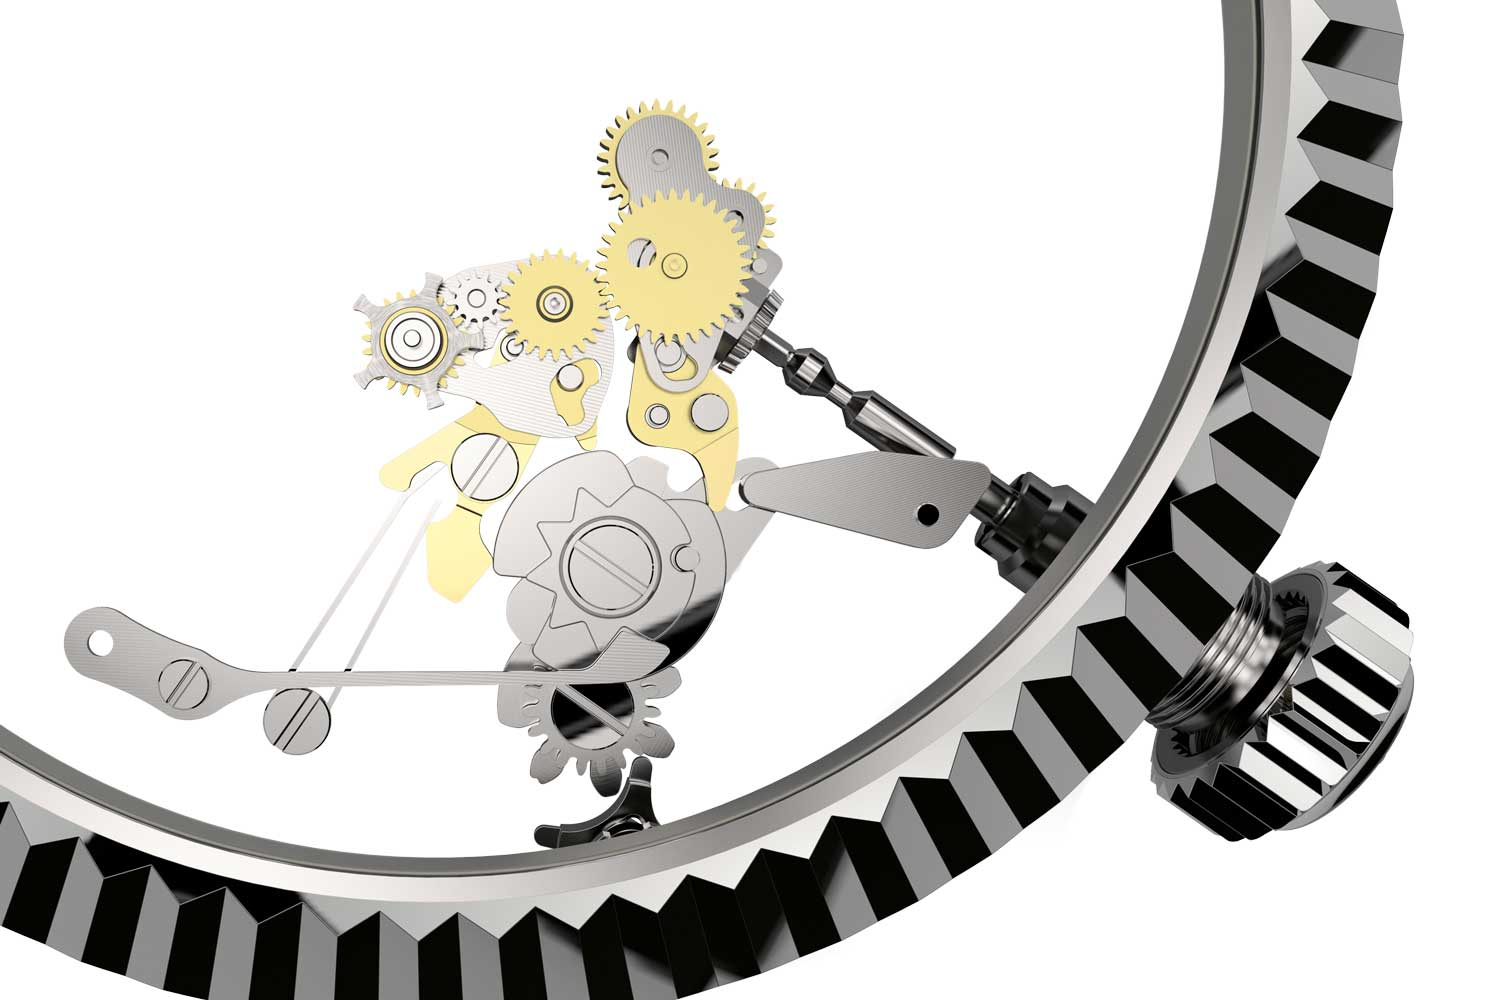 A view of the planetary gear system of the rotatable fluted bezel, controlled by the crown, which in different positions, offer up a number of different complications on the Oyster Perpetual Sky-Dweller